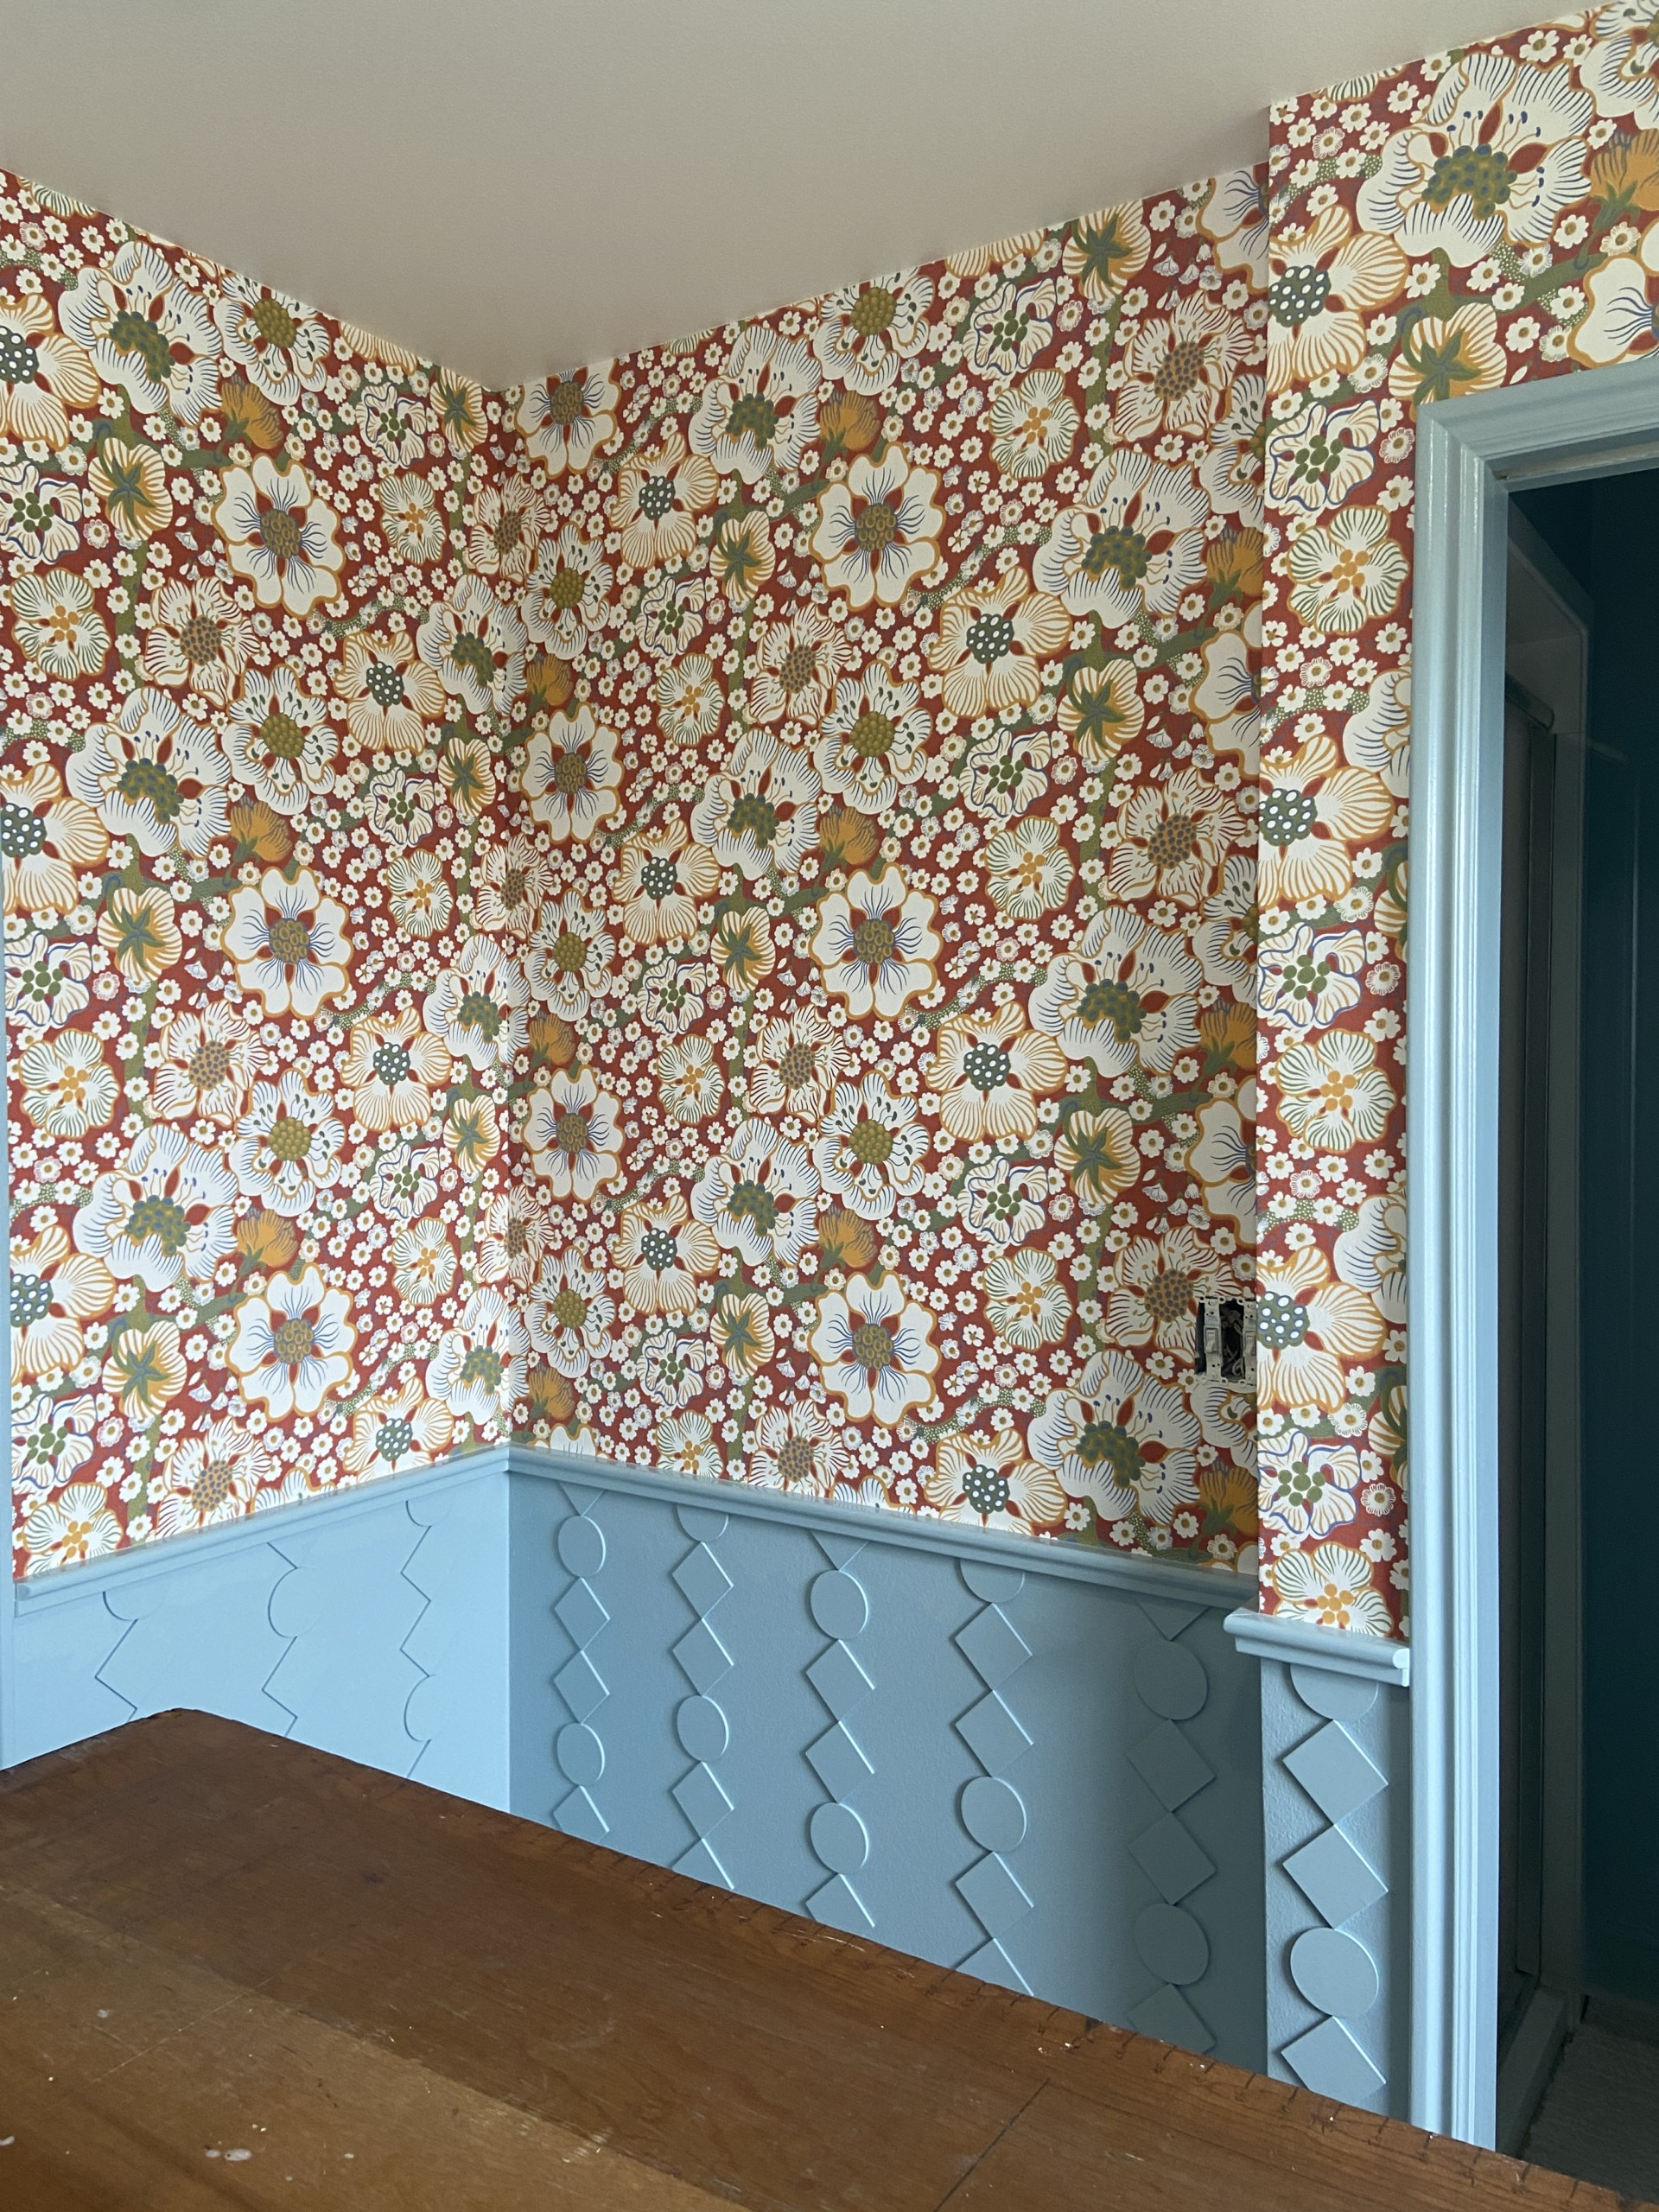 Interior shot of a room with red floral wallpaper and blue custom wainscoting.